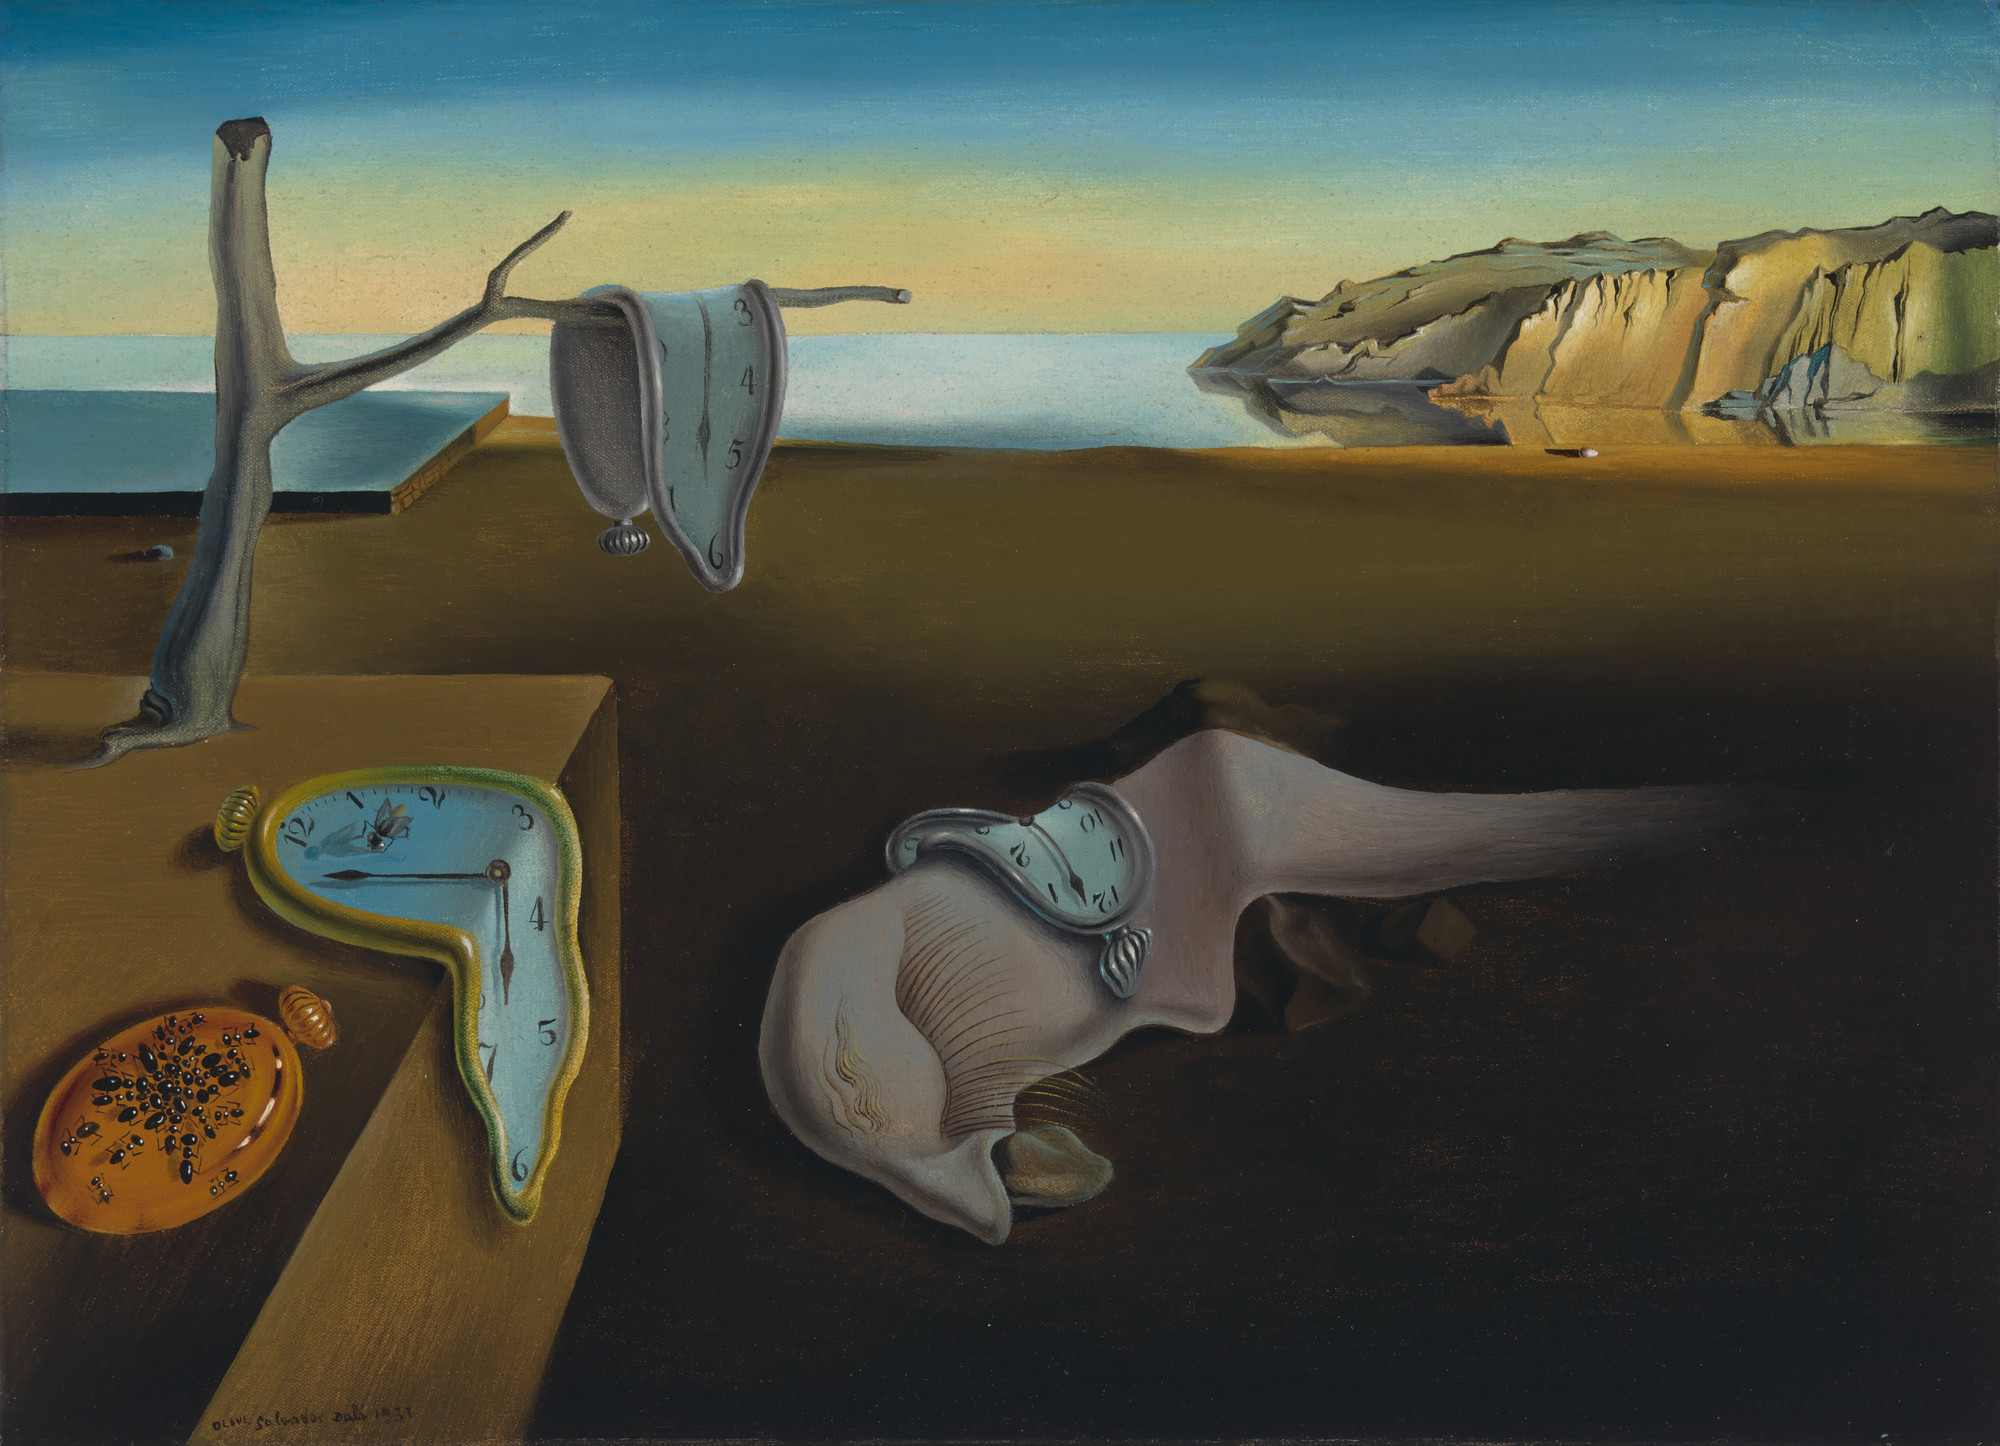 Salvador Dalí  The Persistence of Memory  1931 | MoMA